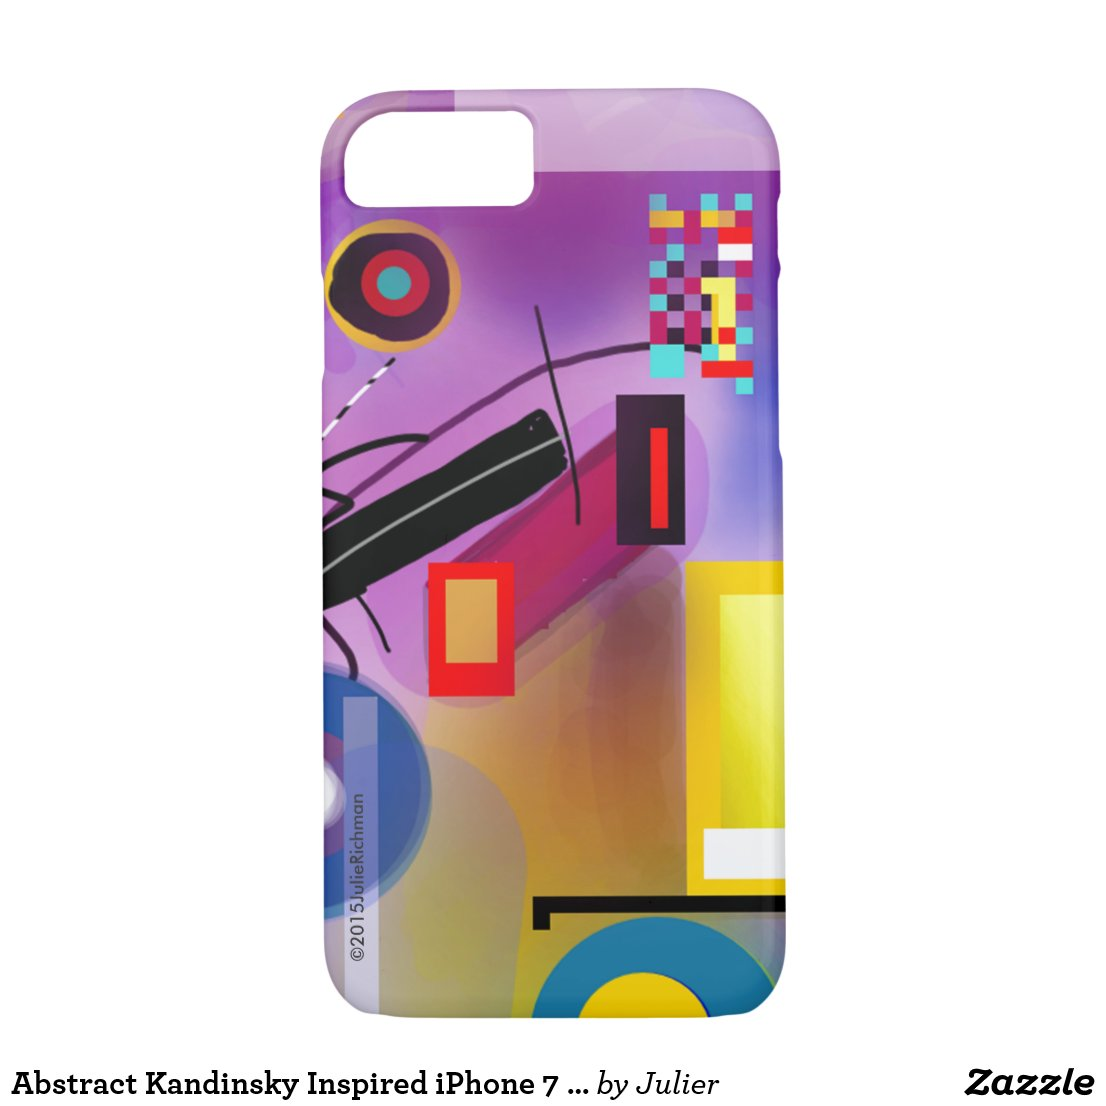 Abstract Kandinsky Inspired iPhone 7 case